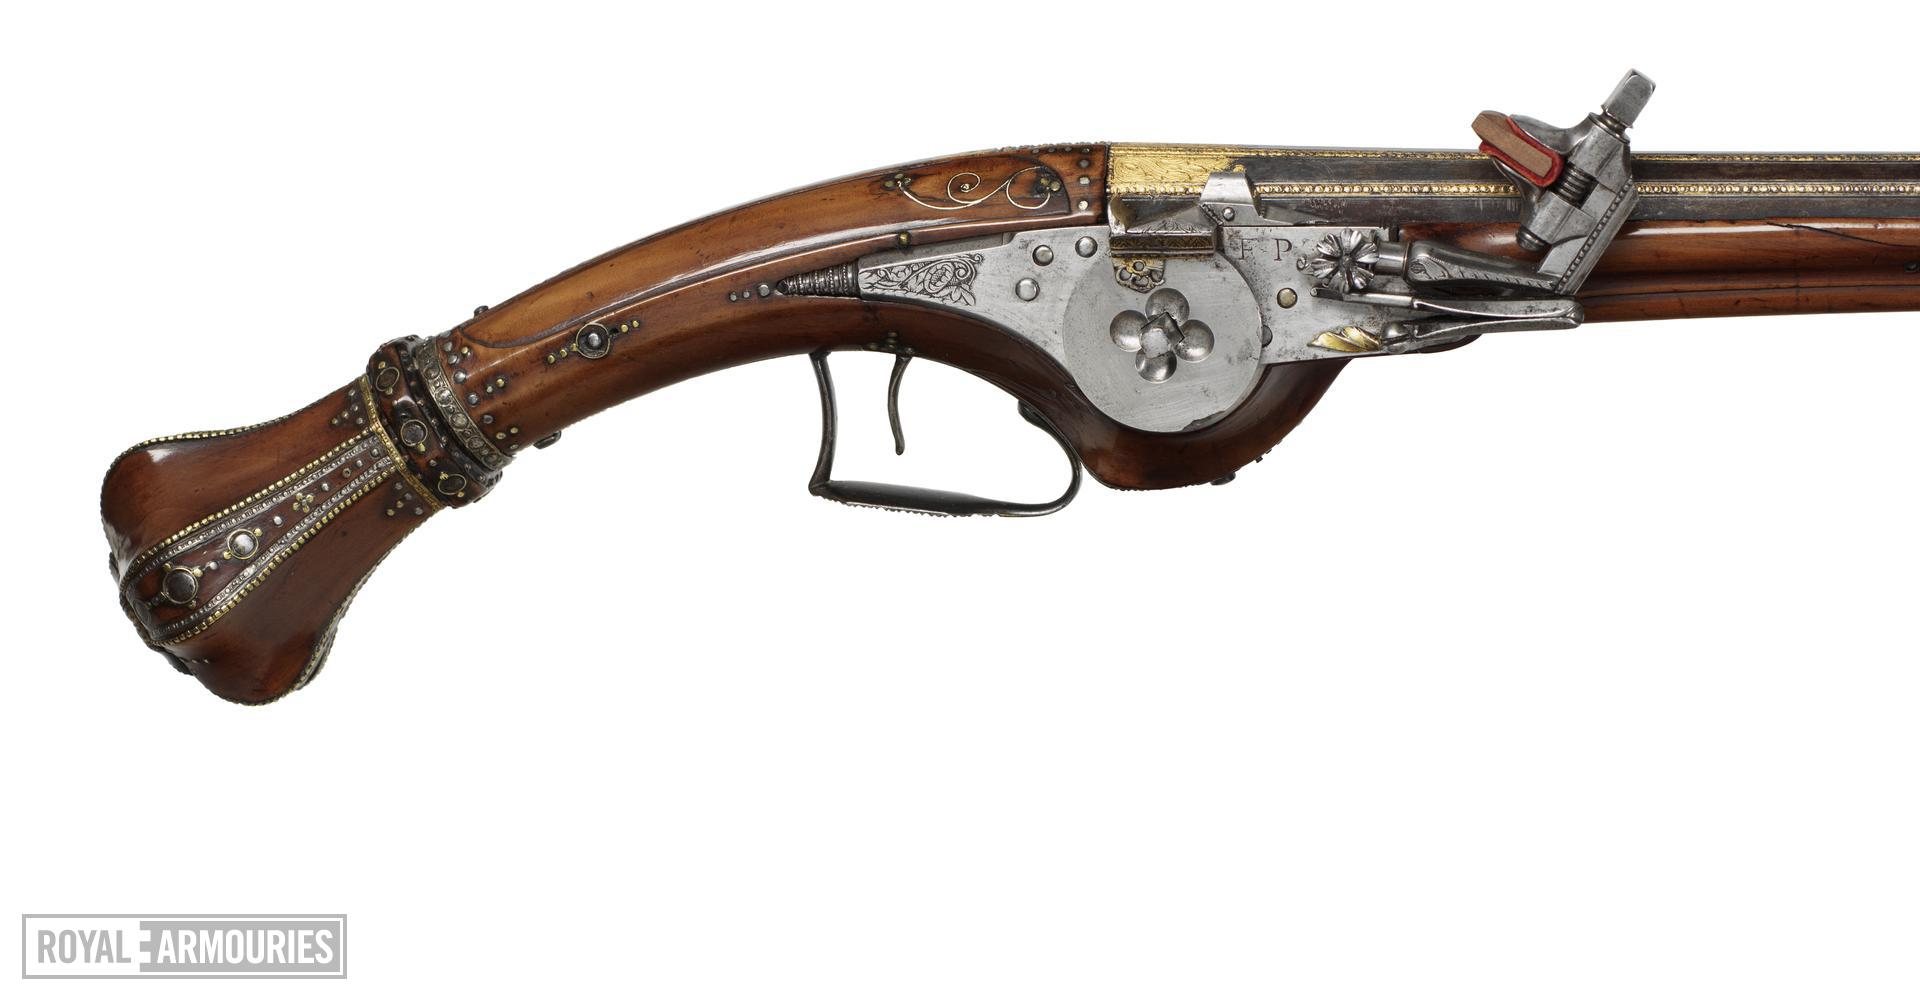 Flintlock pistol By Lazarino Cominazzo One of a pair see XII.1563 Made for Ernst August, Duke of Saxe-Weimar-Eesenach